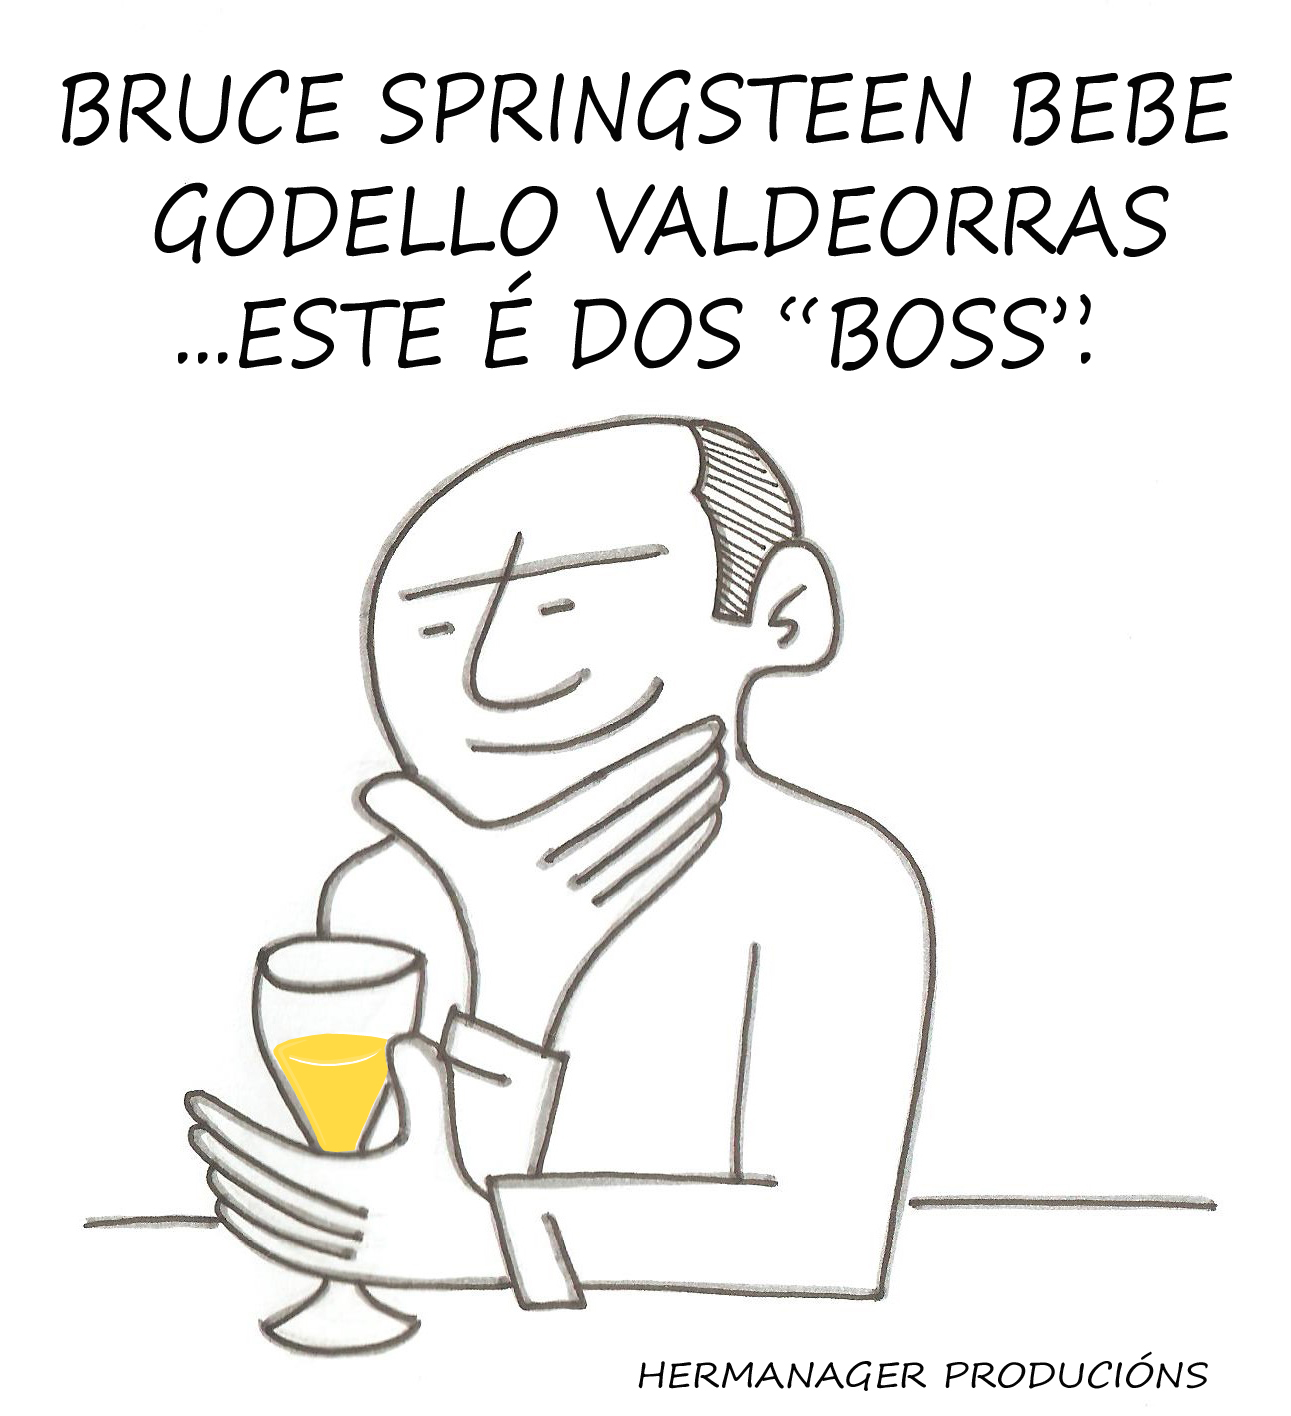 BOSS GODELLO